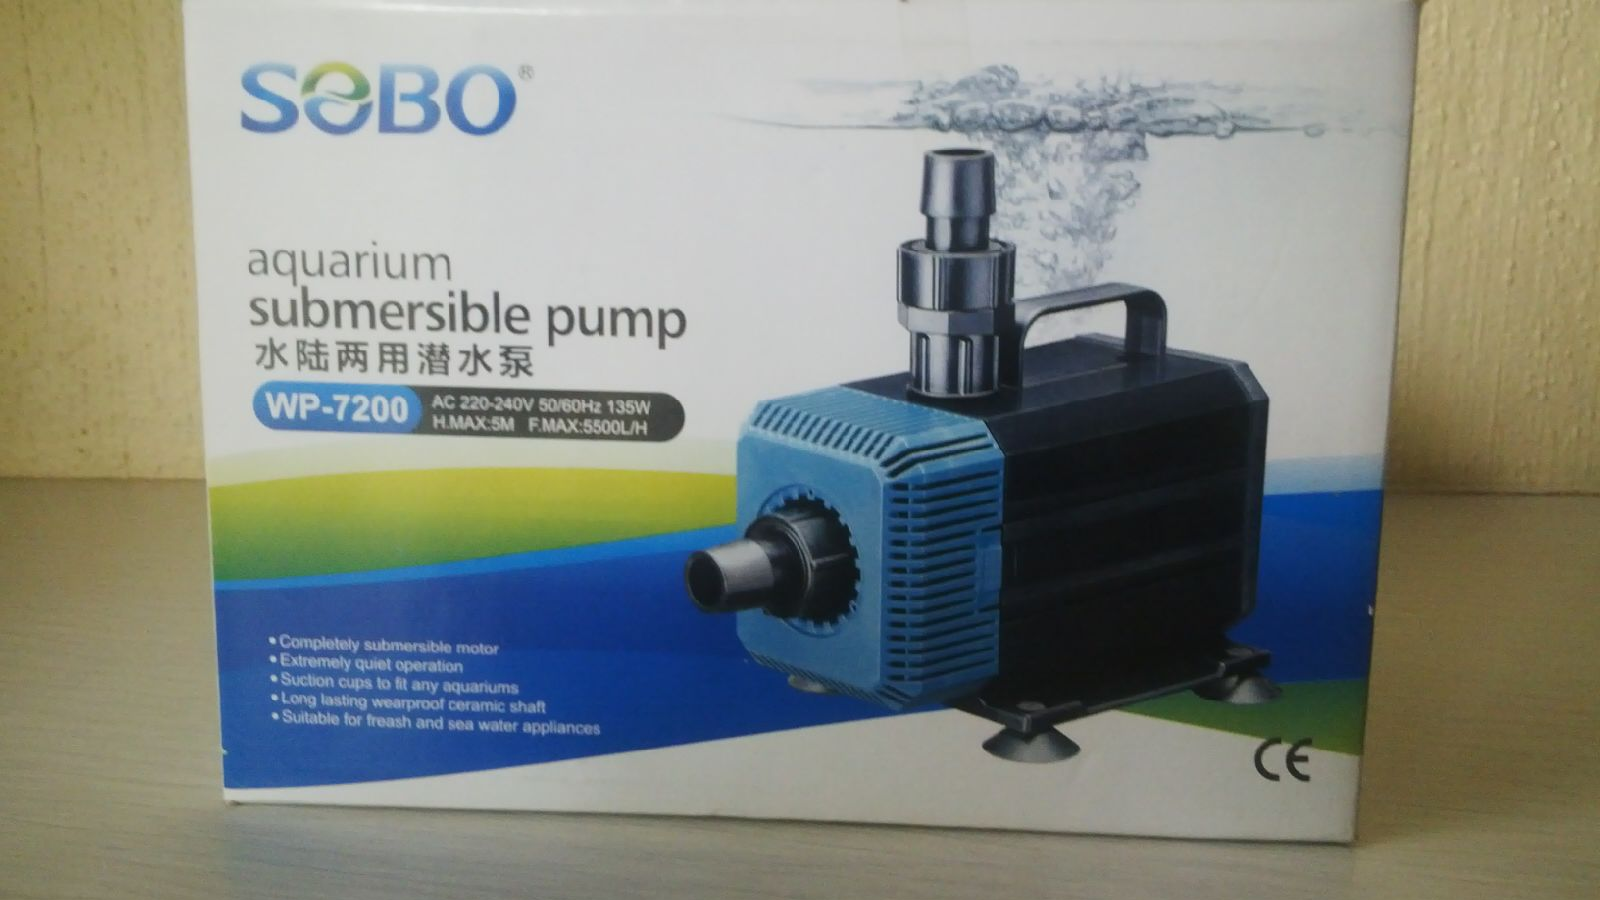 Sobo Submersible pump WP-7200 for sale still new